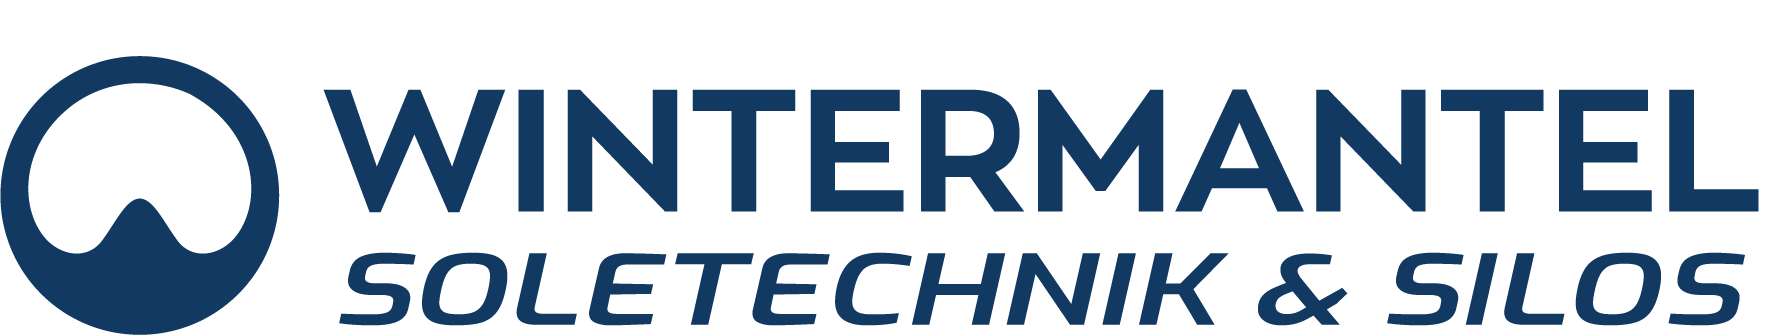 wintermantelgmbh.de Logo